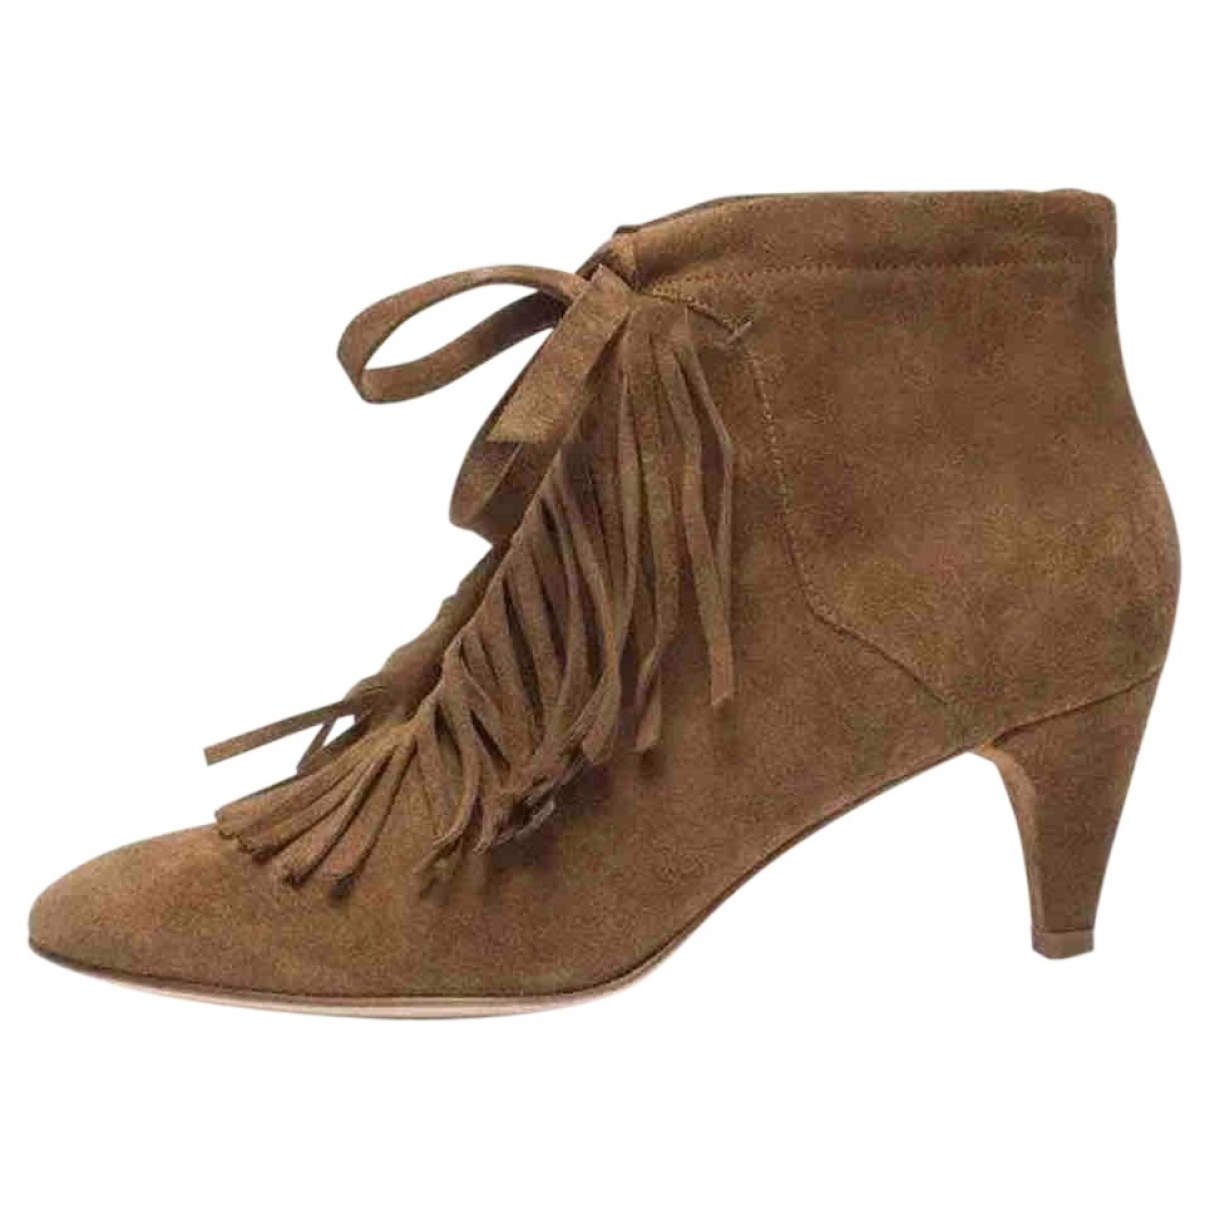 Maje \N Camel Suede Ankle boots for Women 37 EU